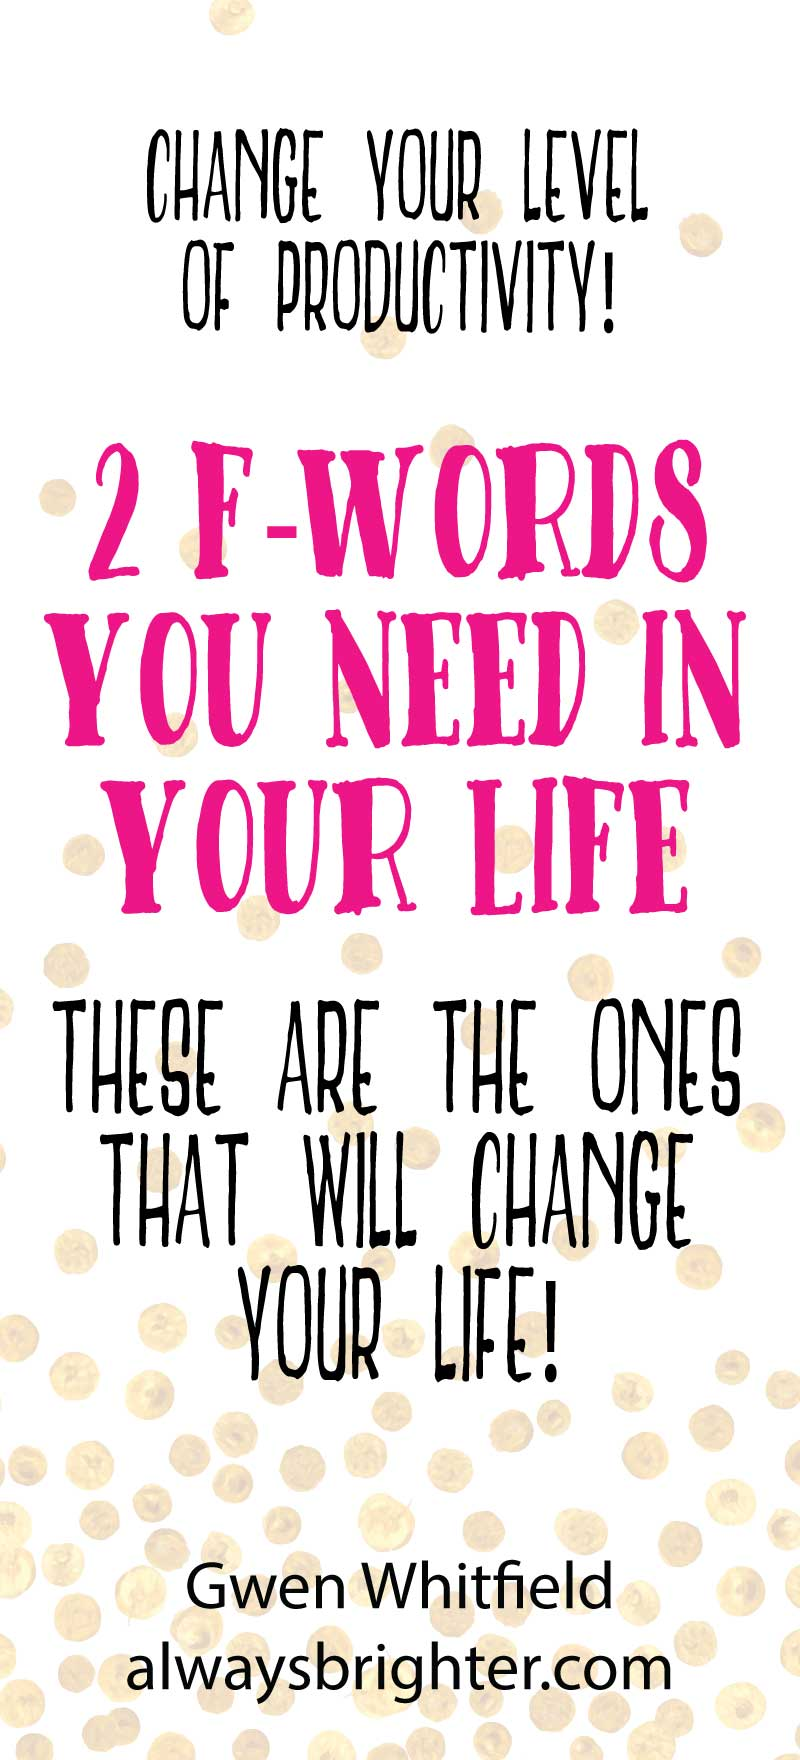 The Two F-Words You Need in Your Life: These 2 F-Words are a must have in your vocabulary! Use them to create a life of directed and sustained growth by increasing your productivity!